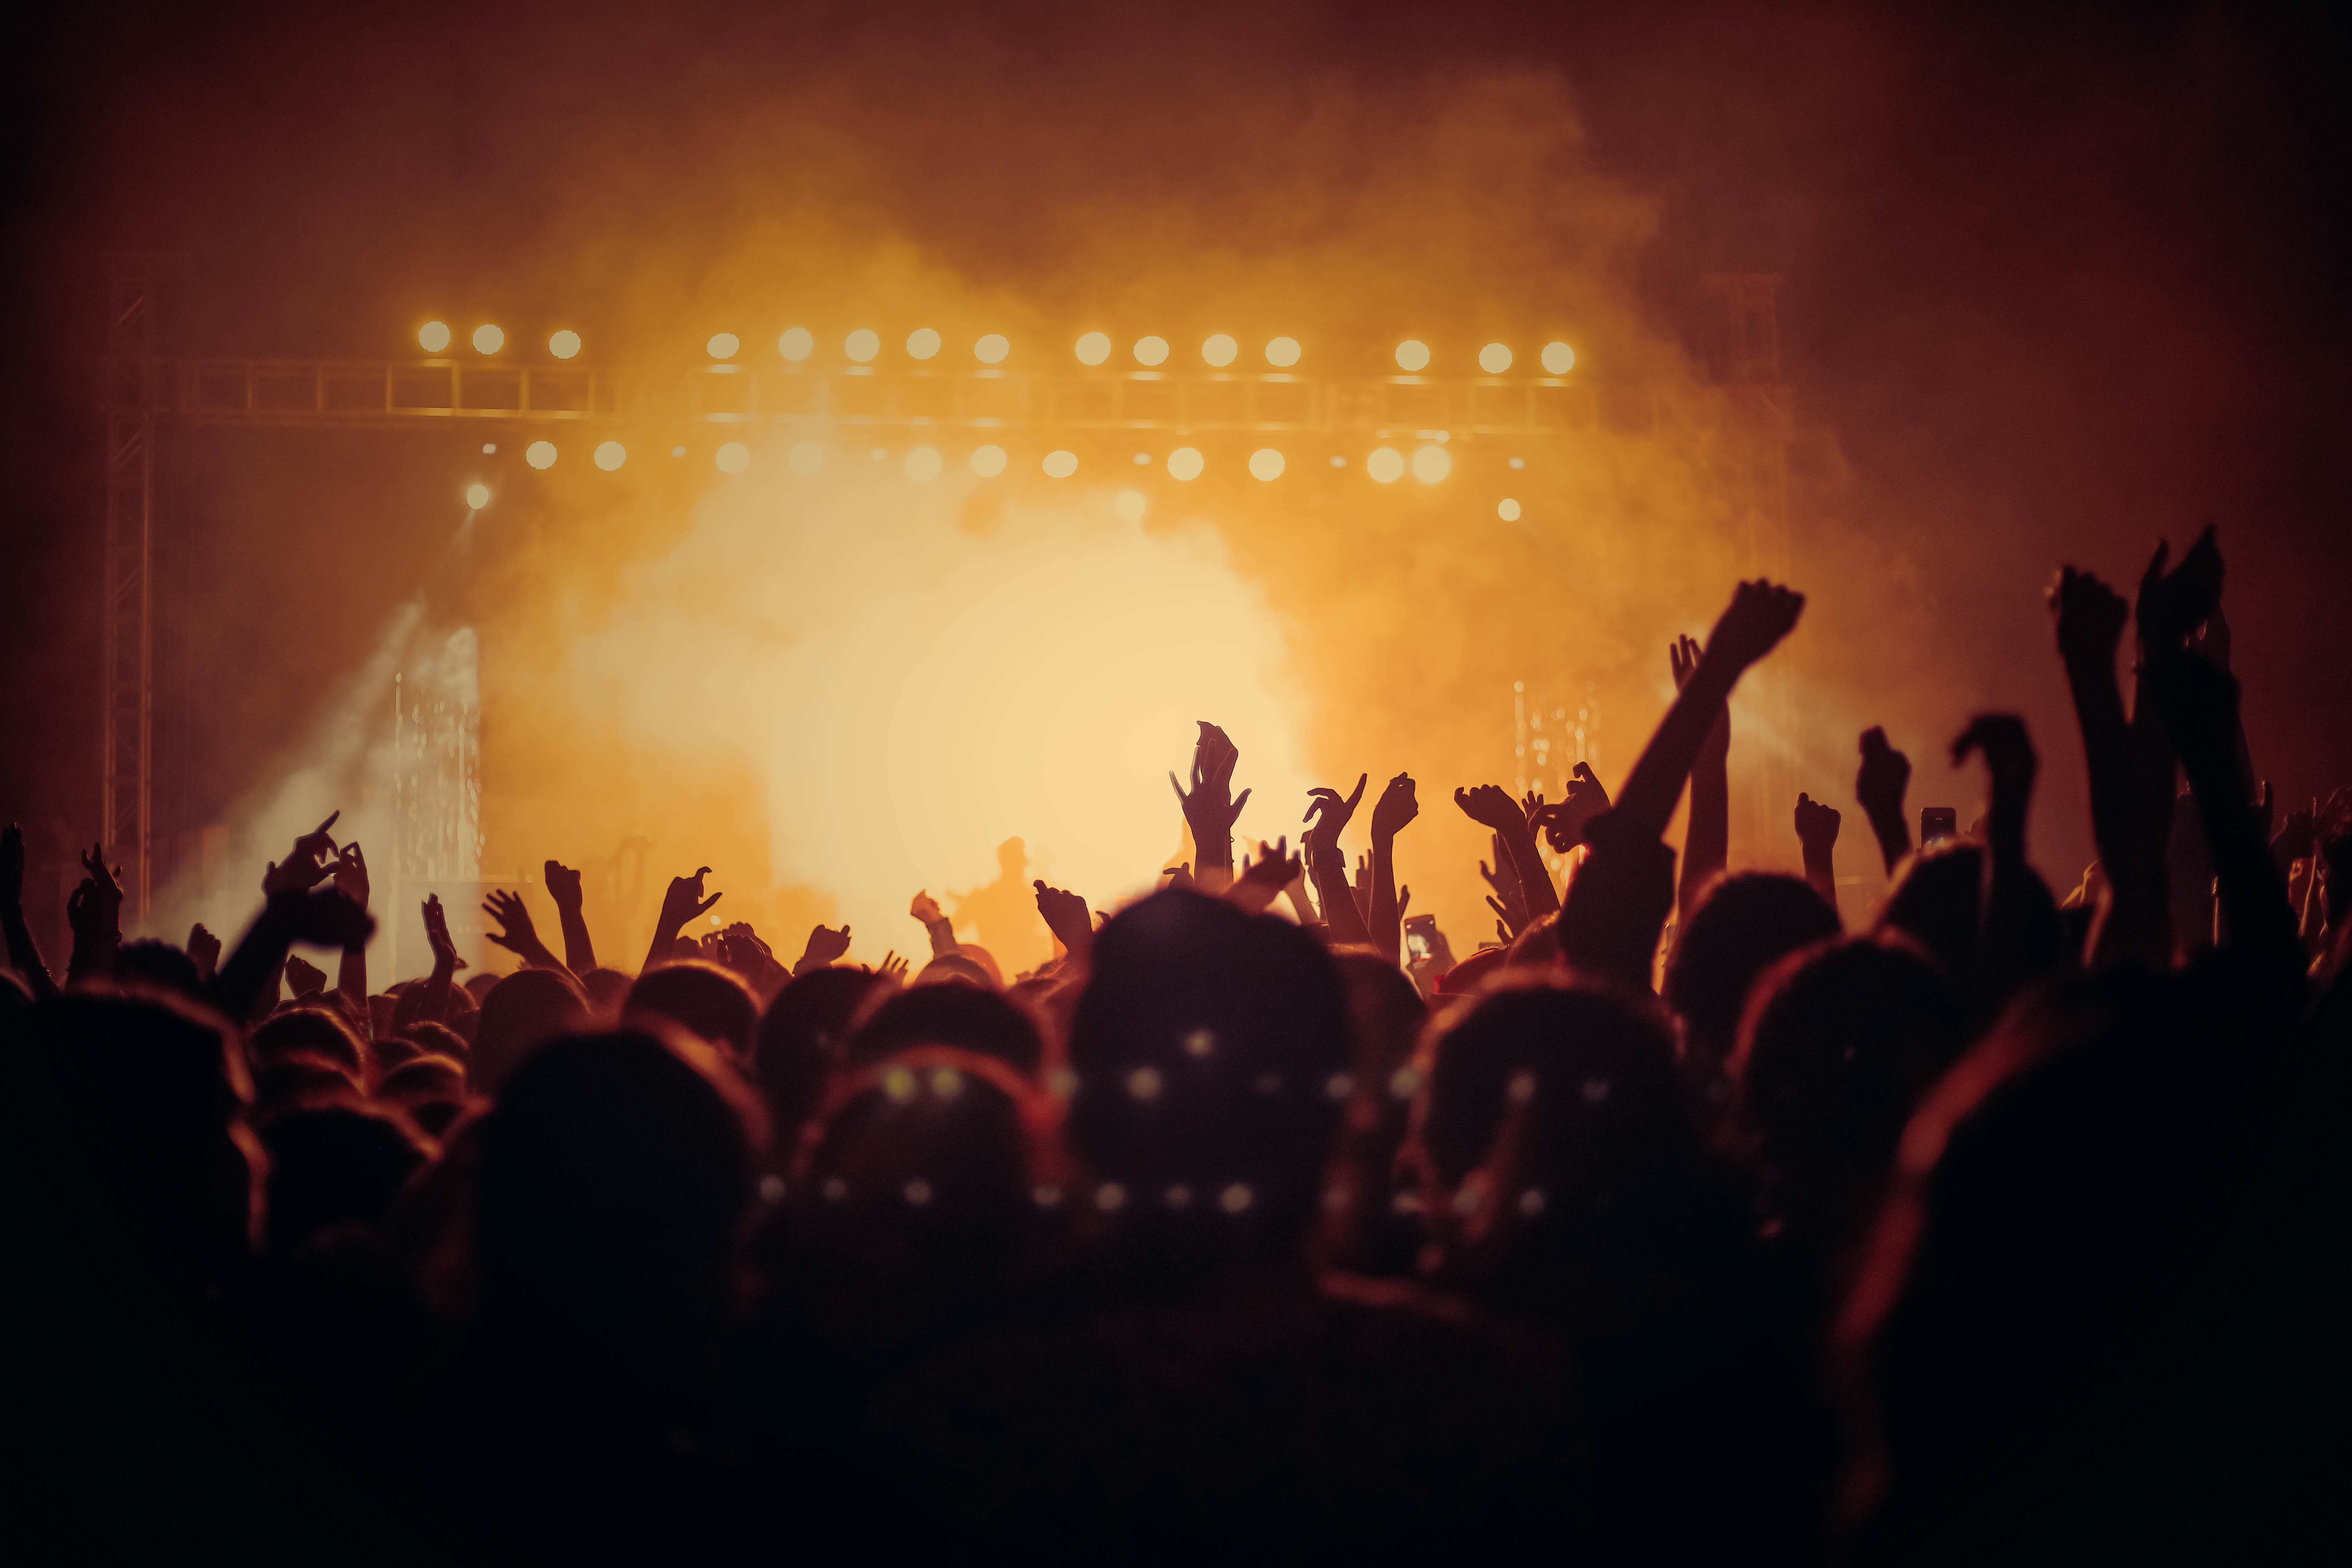 Concert Pictures  HQ    Download Free Images on Unsplash band performing on stage in front of people